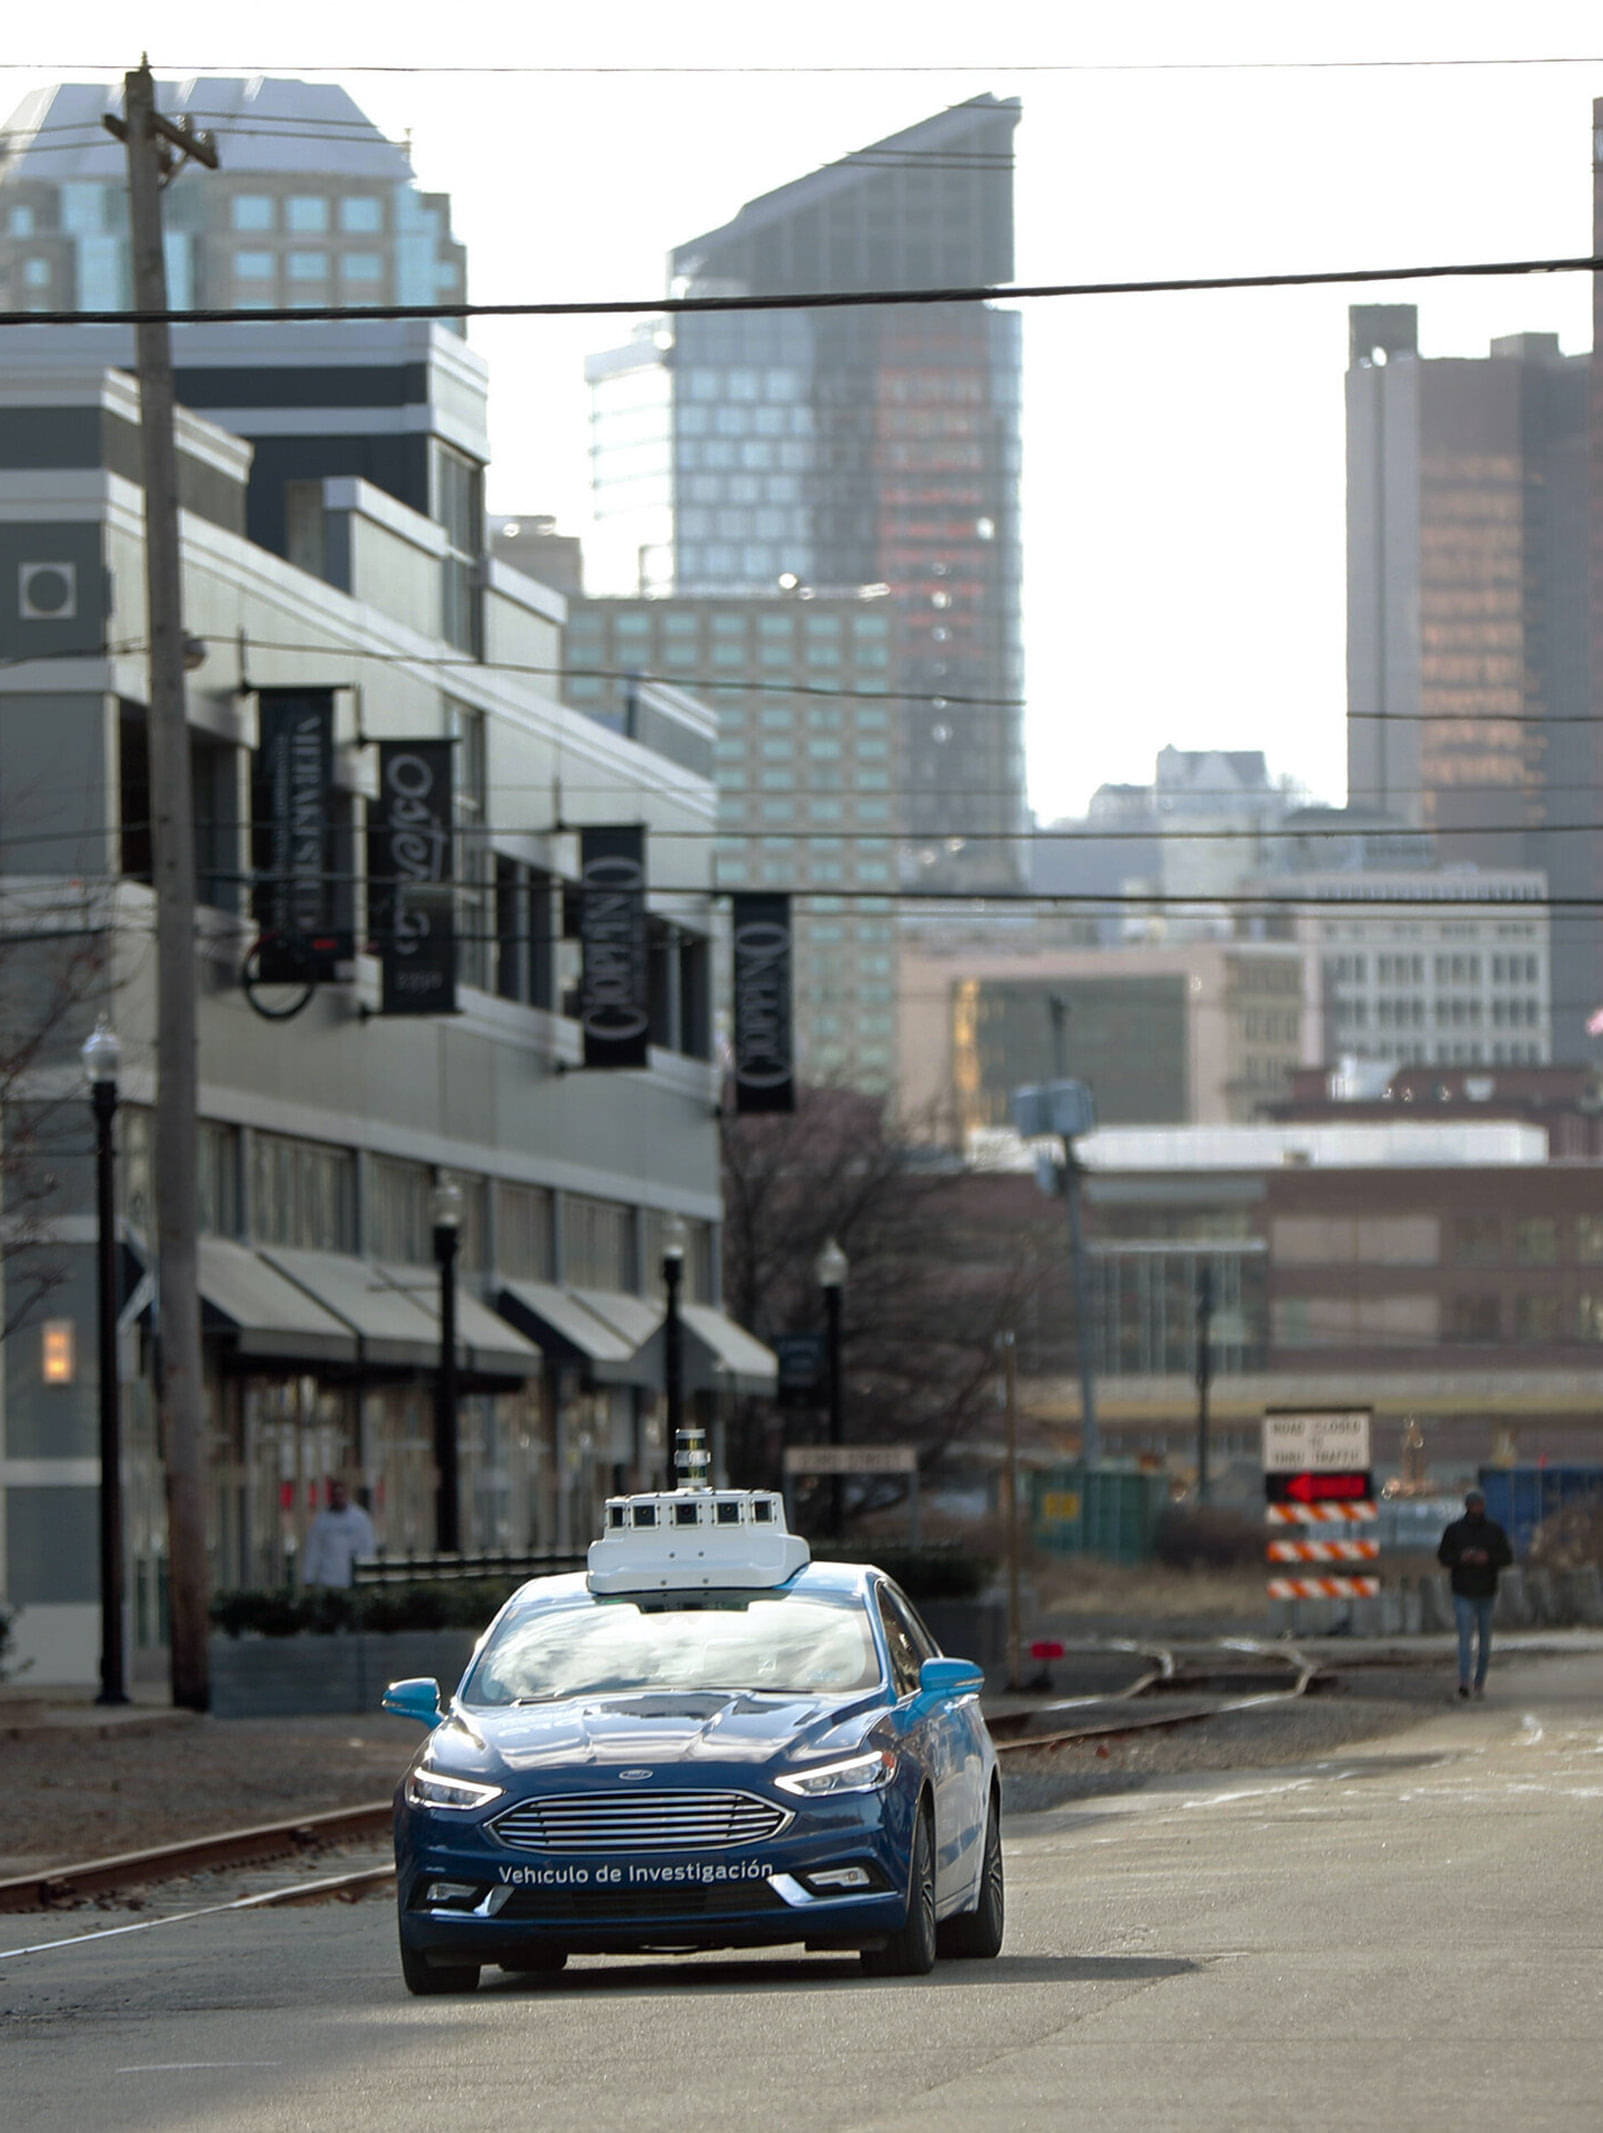 US AGENCY POSTS ONLINE MAP TO TRACK AUTONOMOUS VEHICLE TESTS